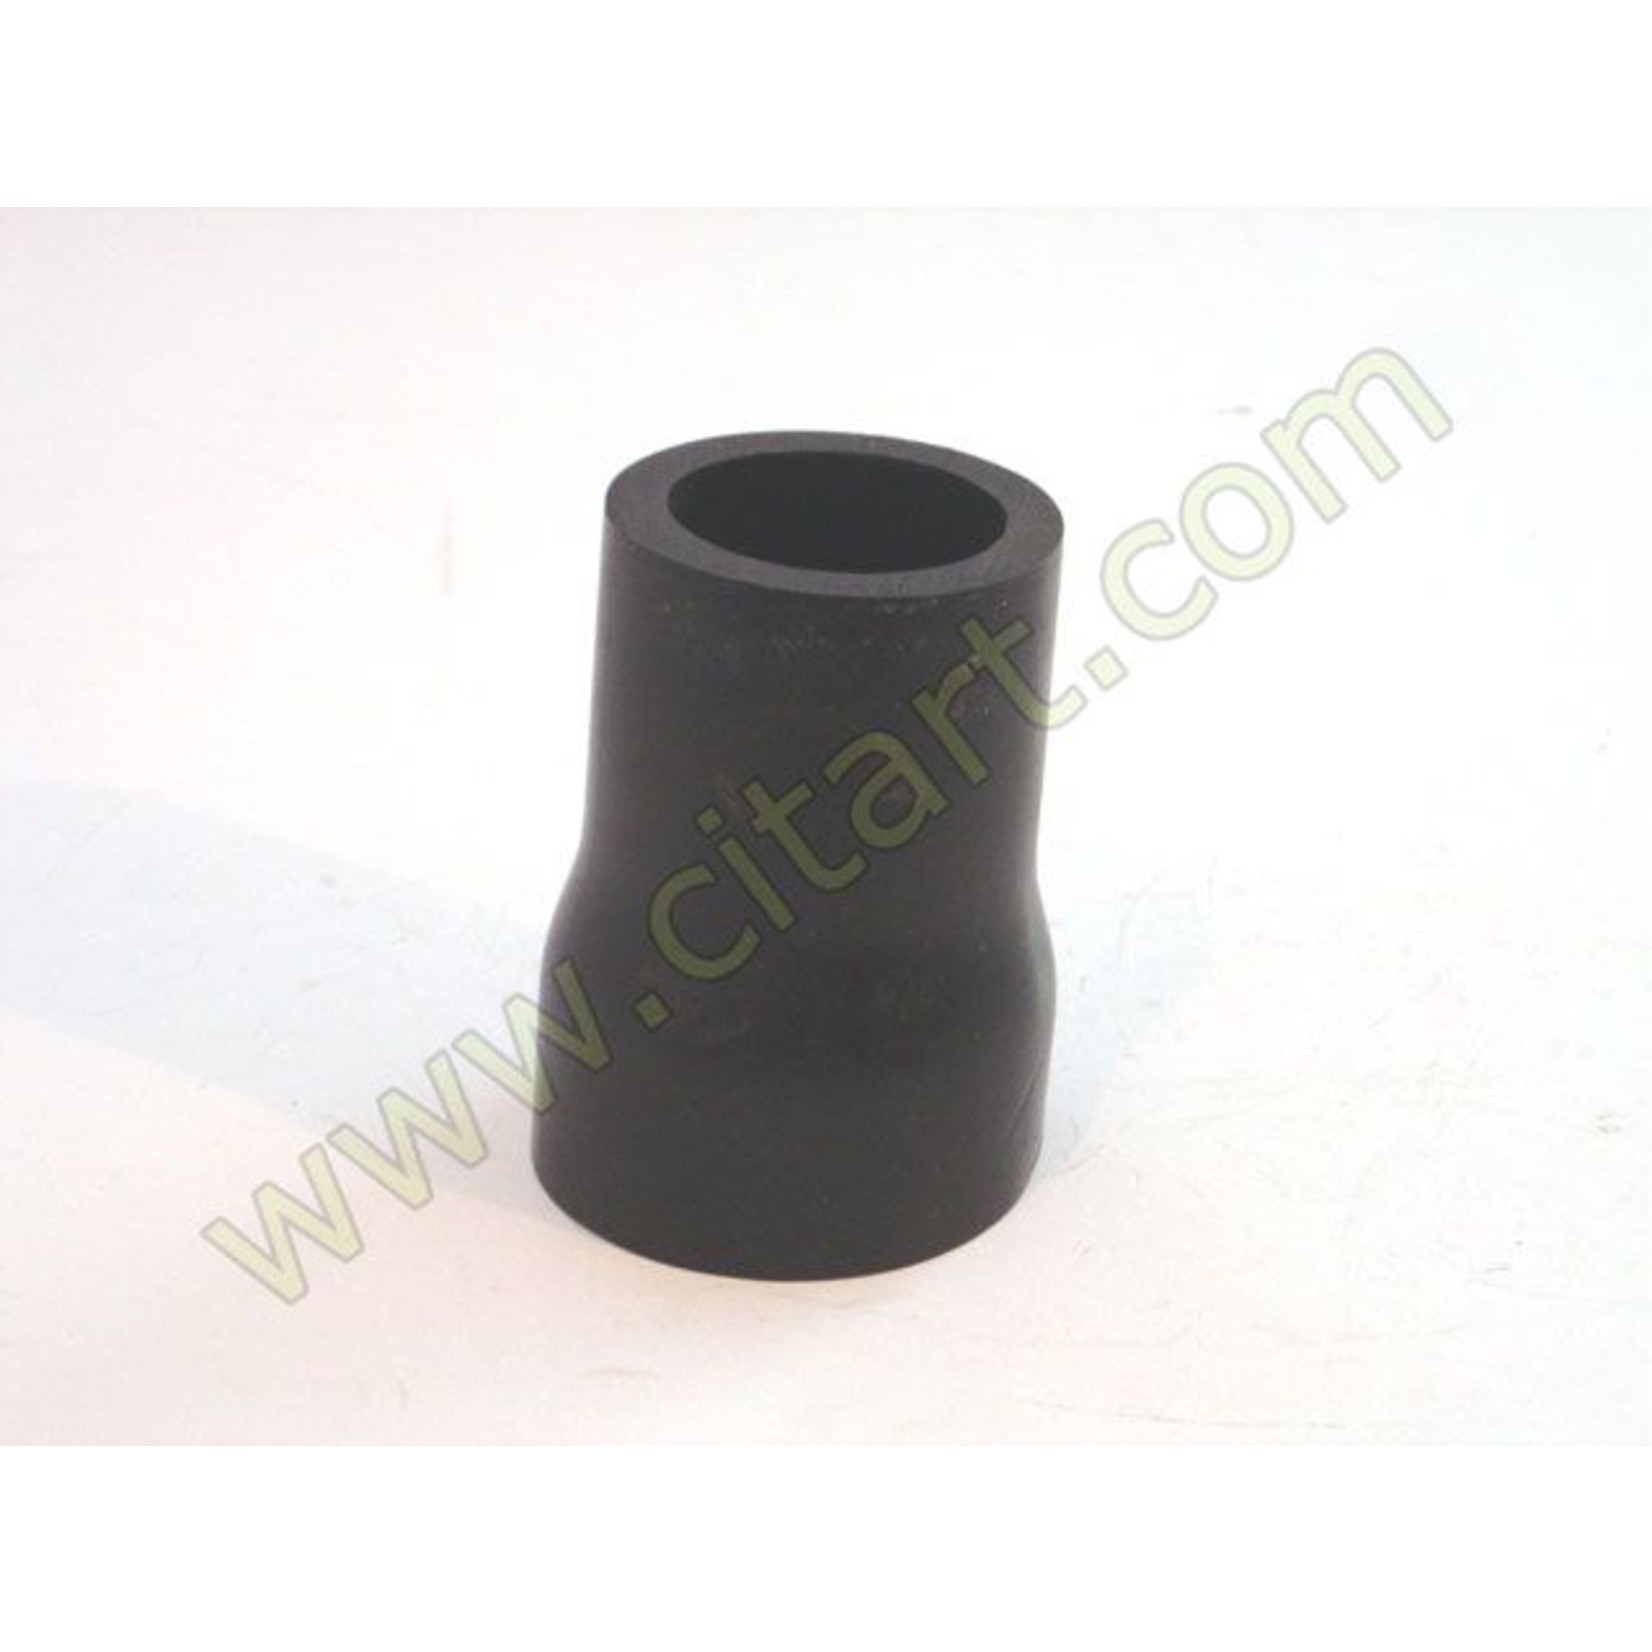 Rubber union under water pump 66- Nr Org: DX23510